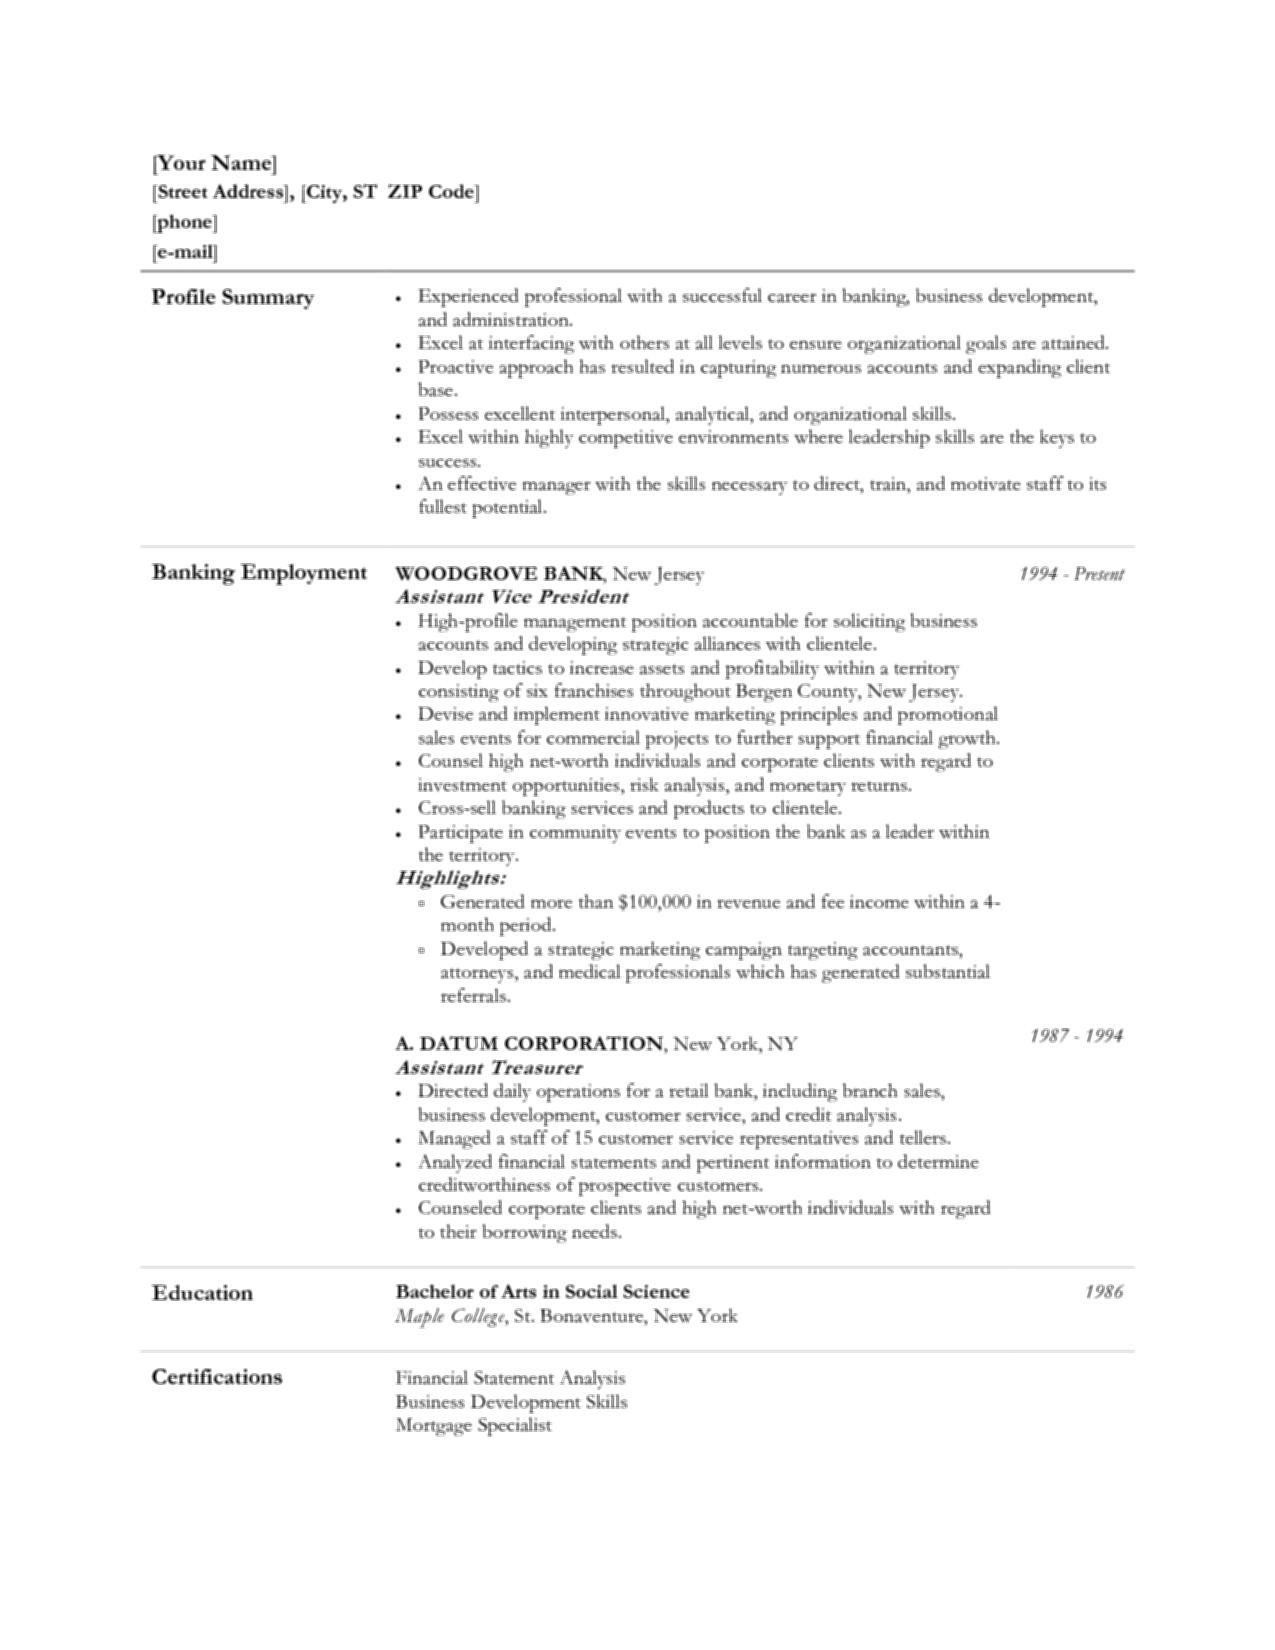 Sample Resume For Java Developer Fresher Elegant Resume Headline For Java Developer In Net Resume Objective Statement Bank Teller Resume Job Resume Examples